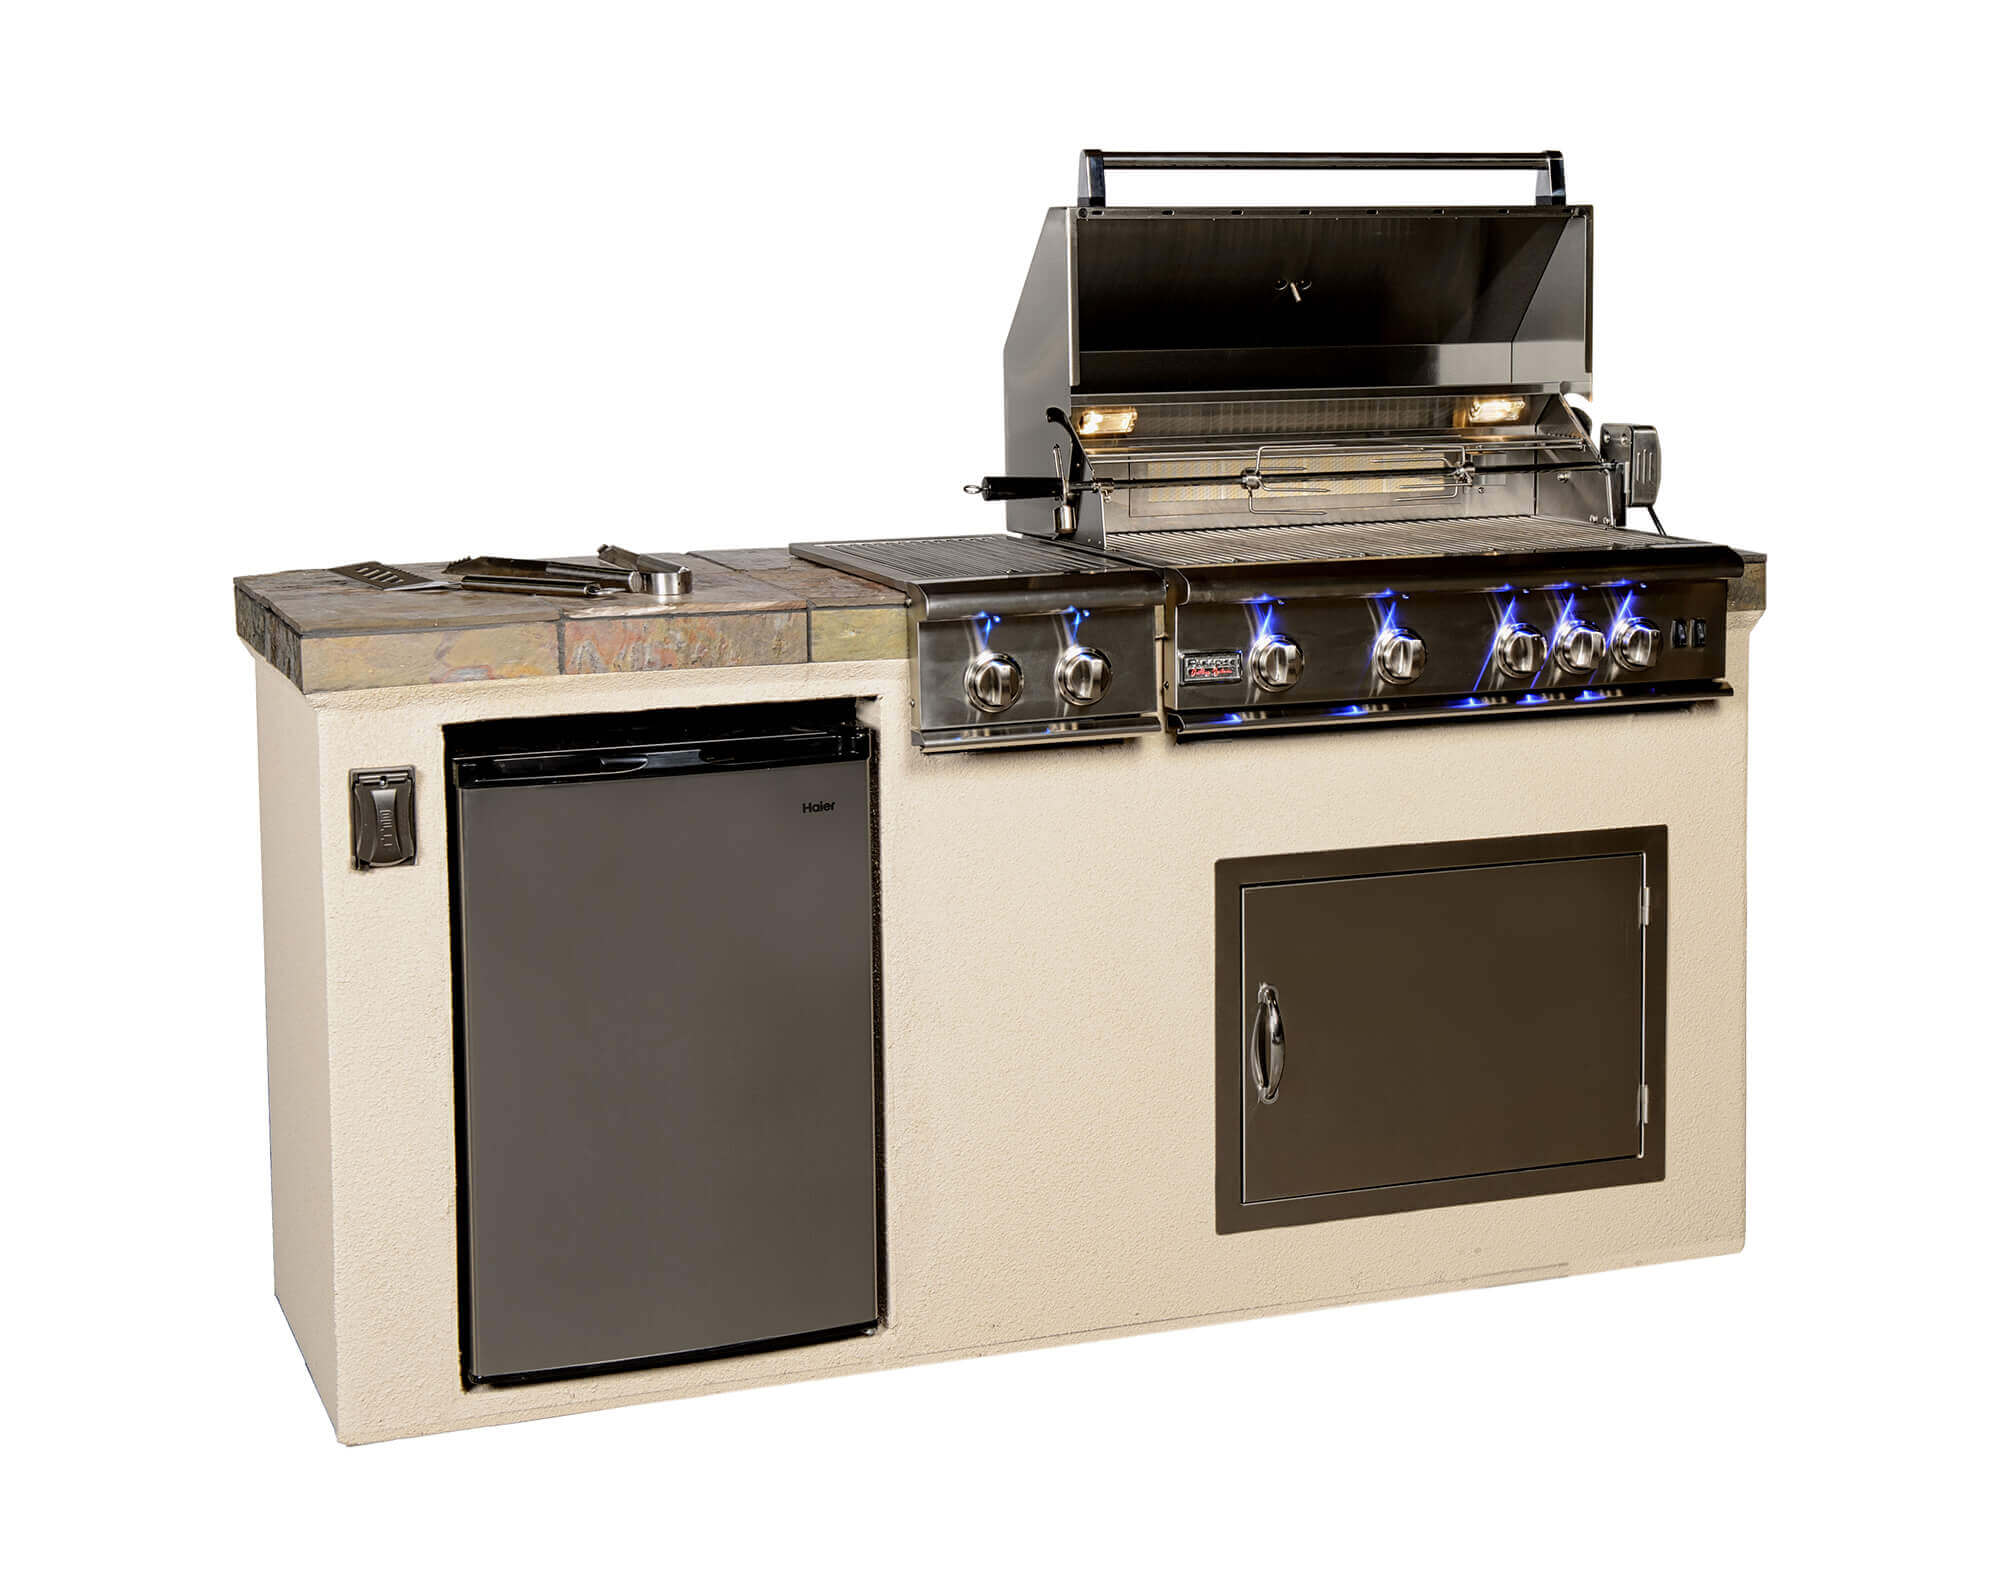 Grills and Outdoor Kitchens in Houston - Paradise GX6